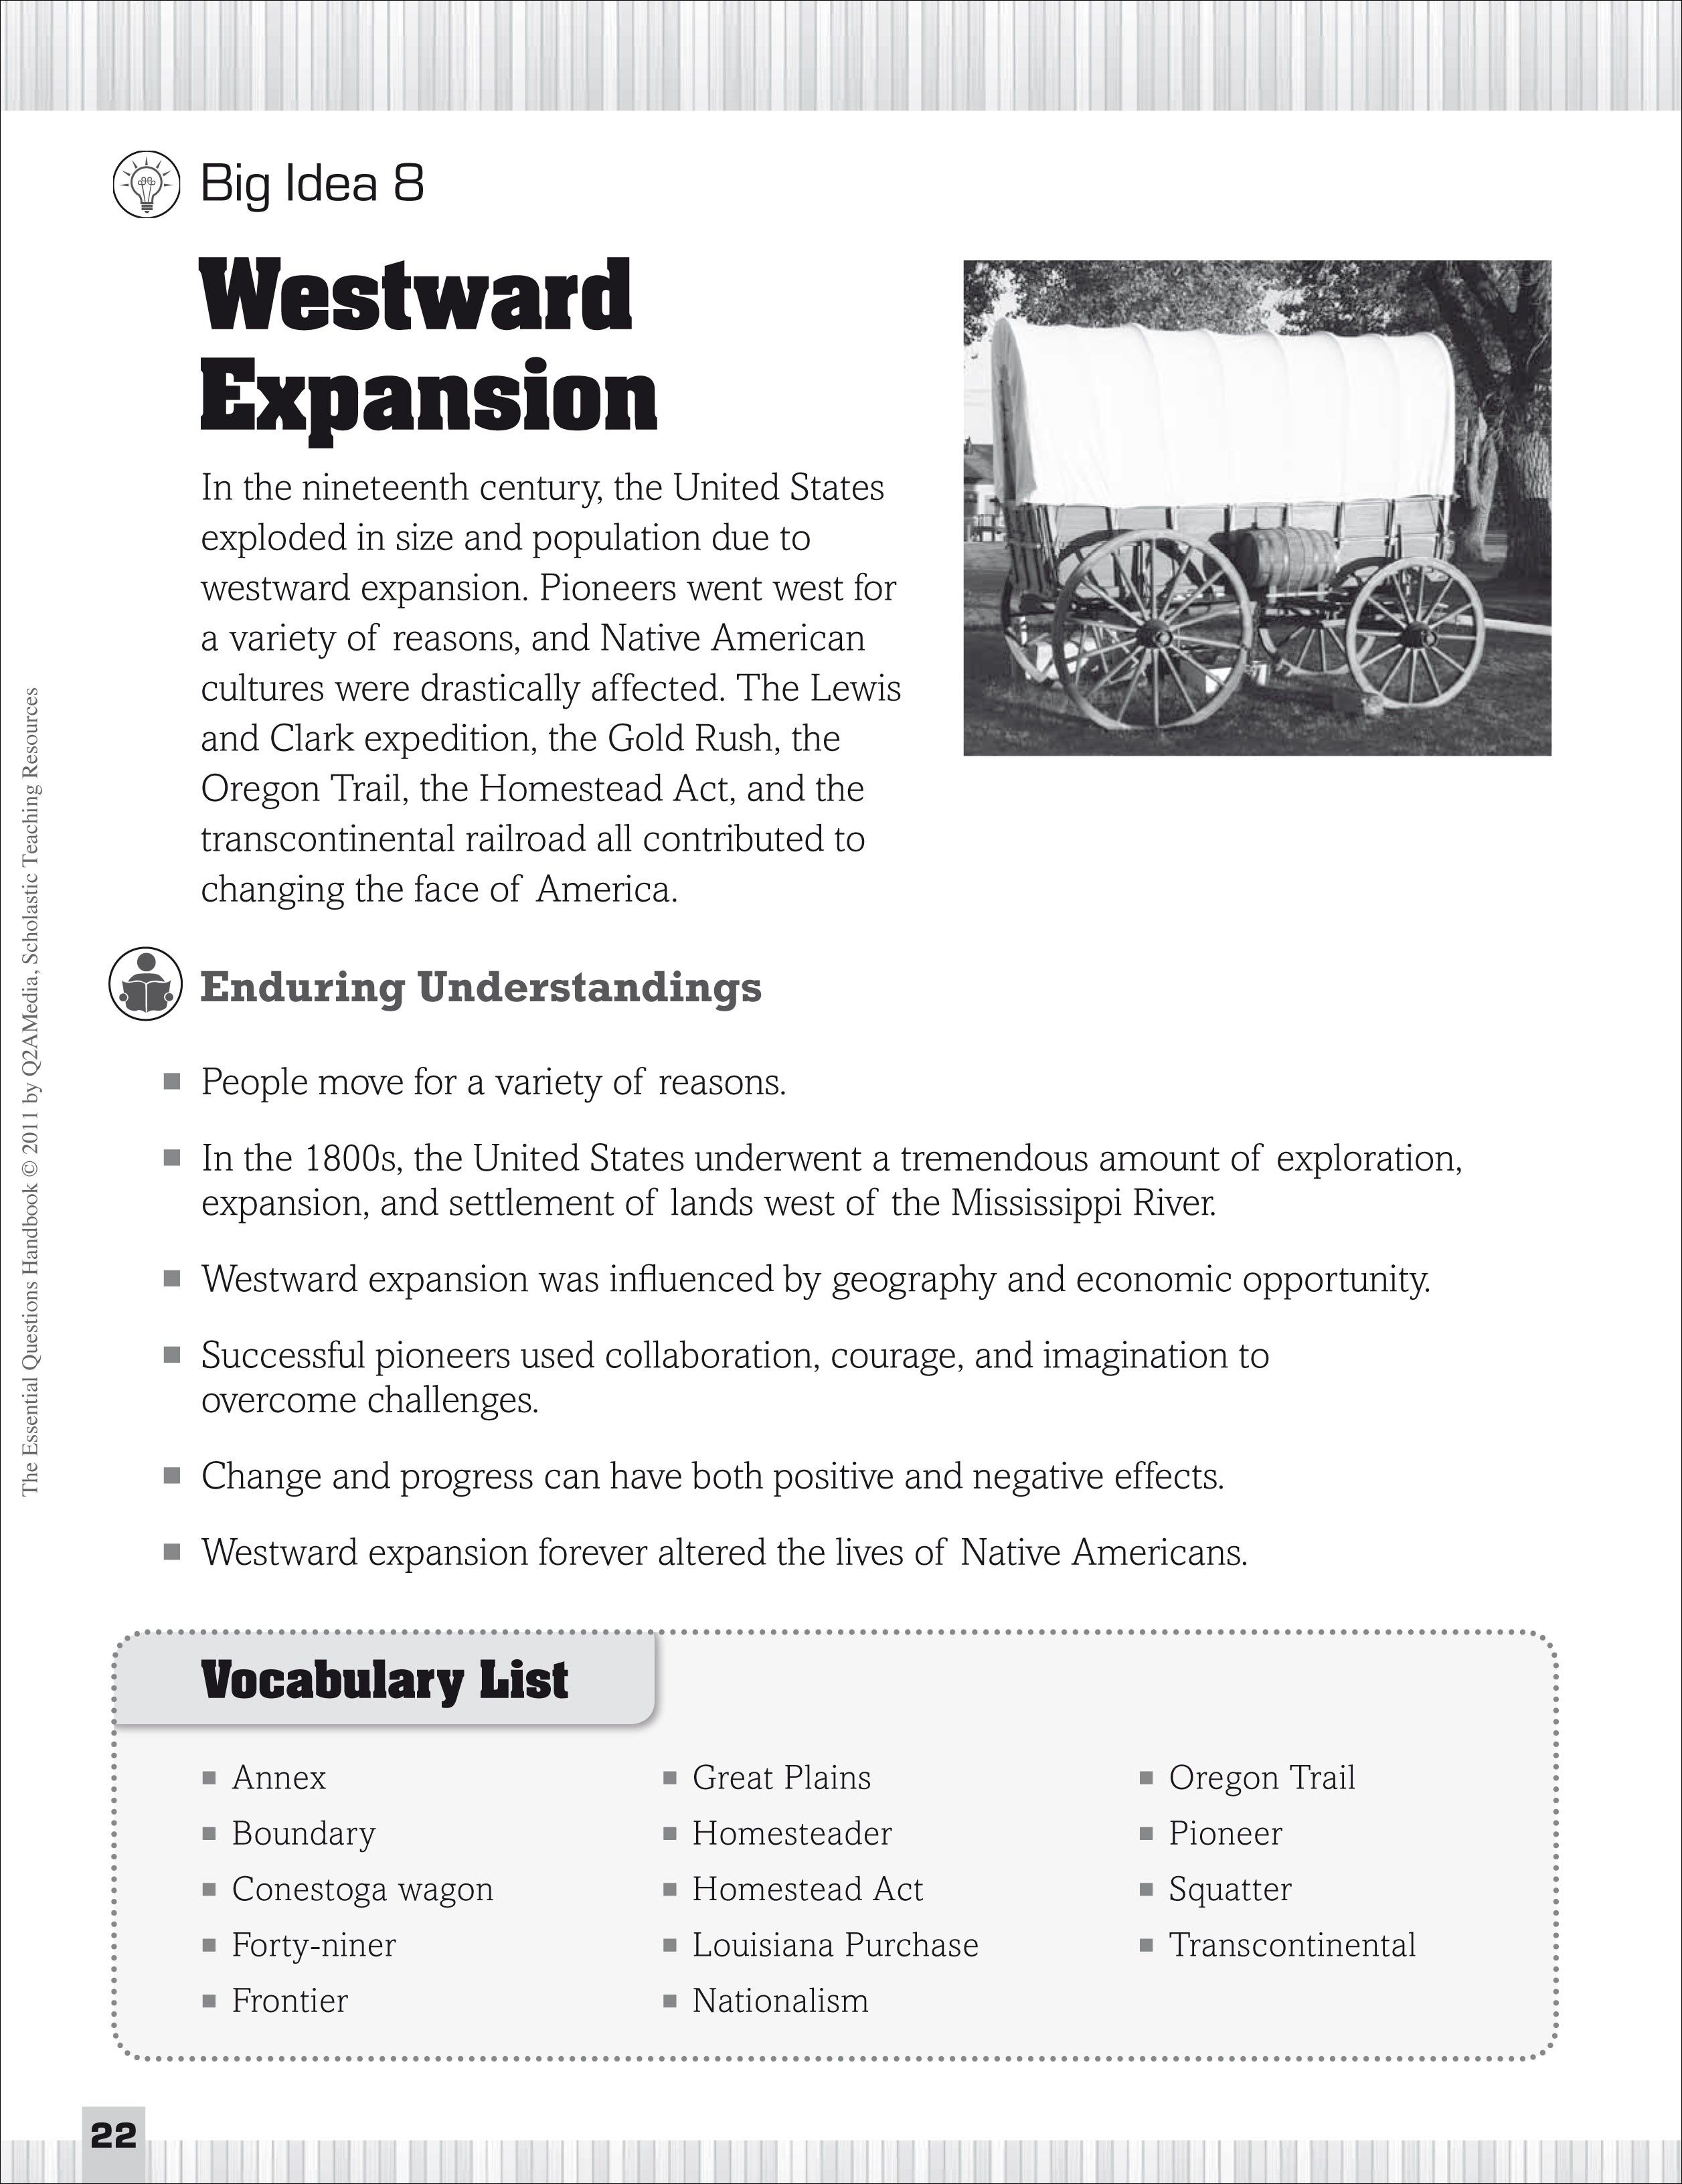 worksheet Westward Expansion Worksheets 10 images about unit 3 westward expansion on pinterest activities timeline and covered wagon